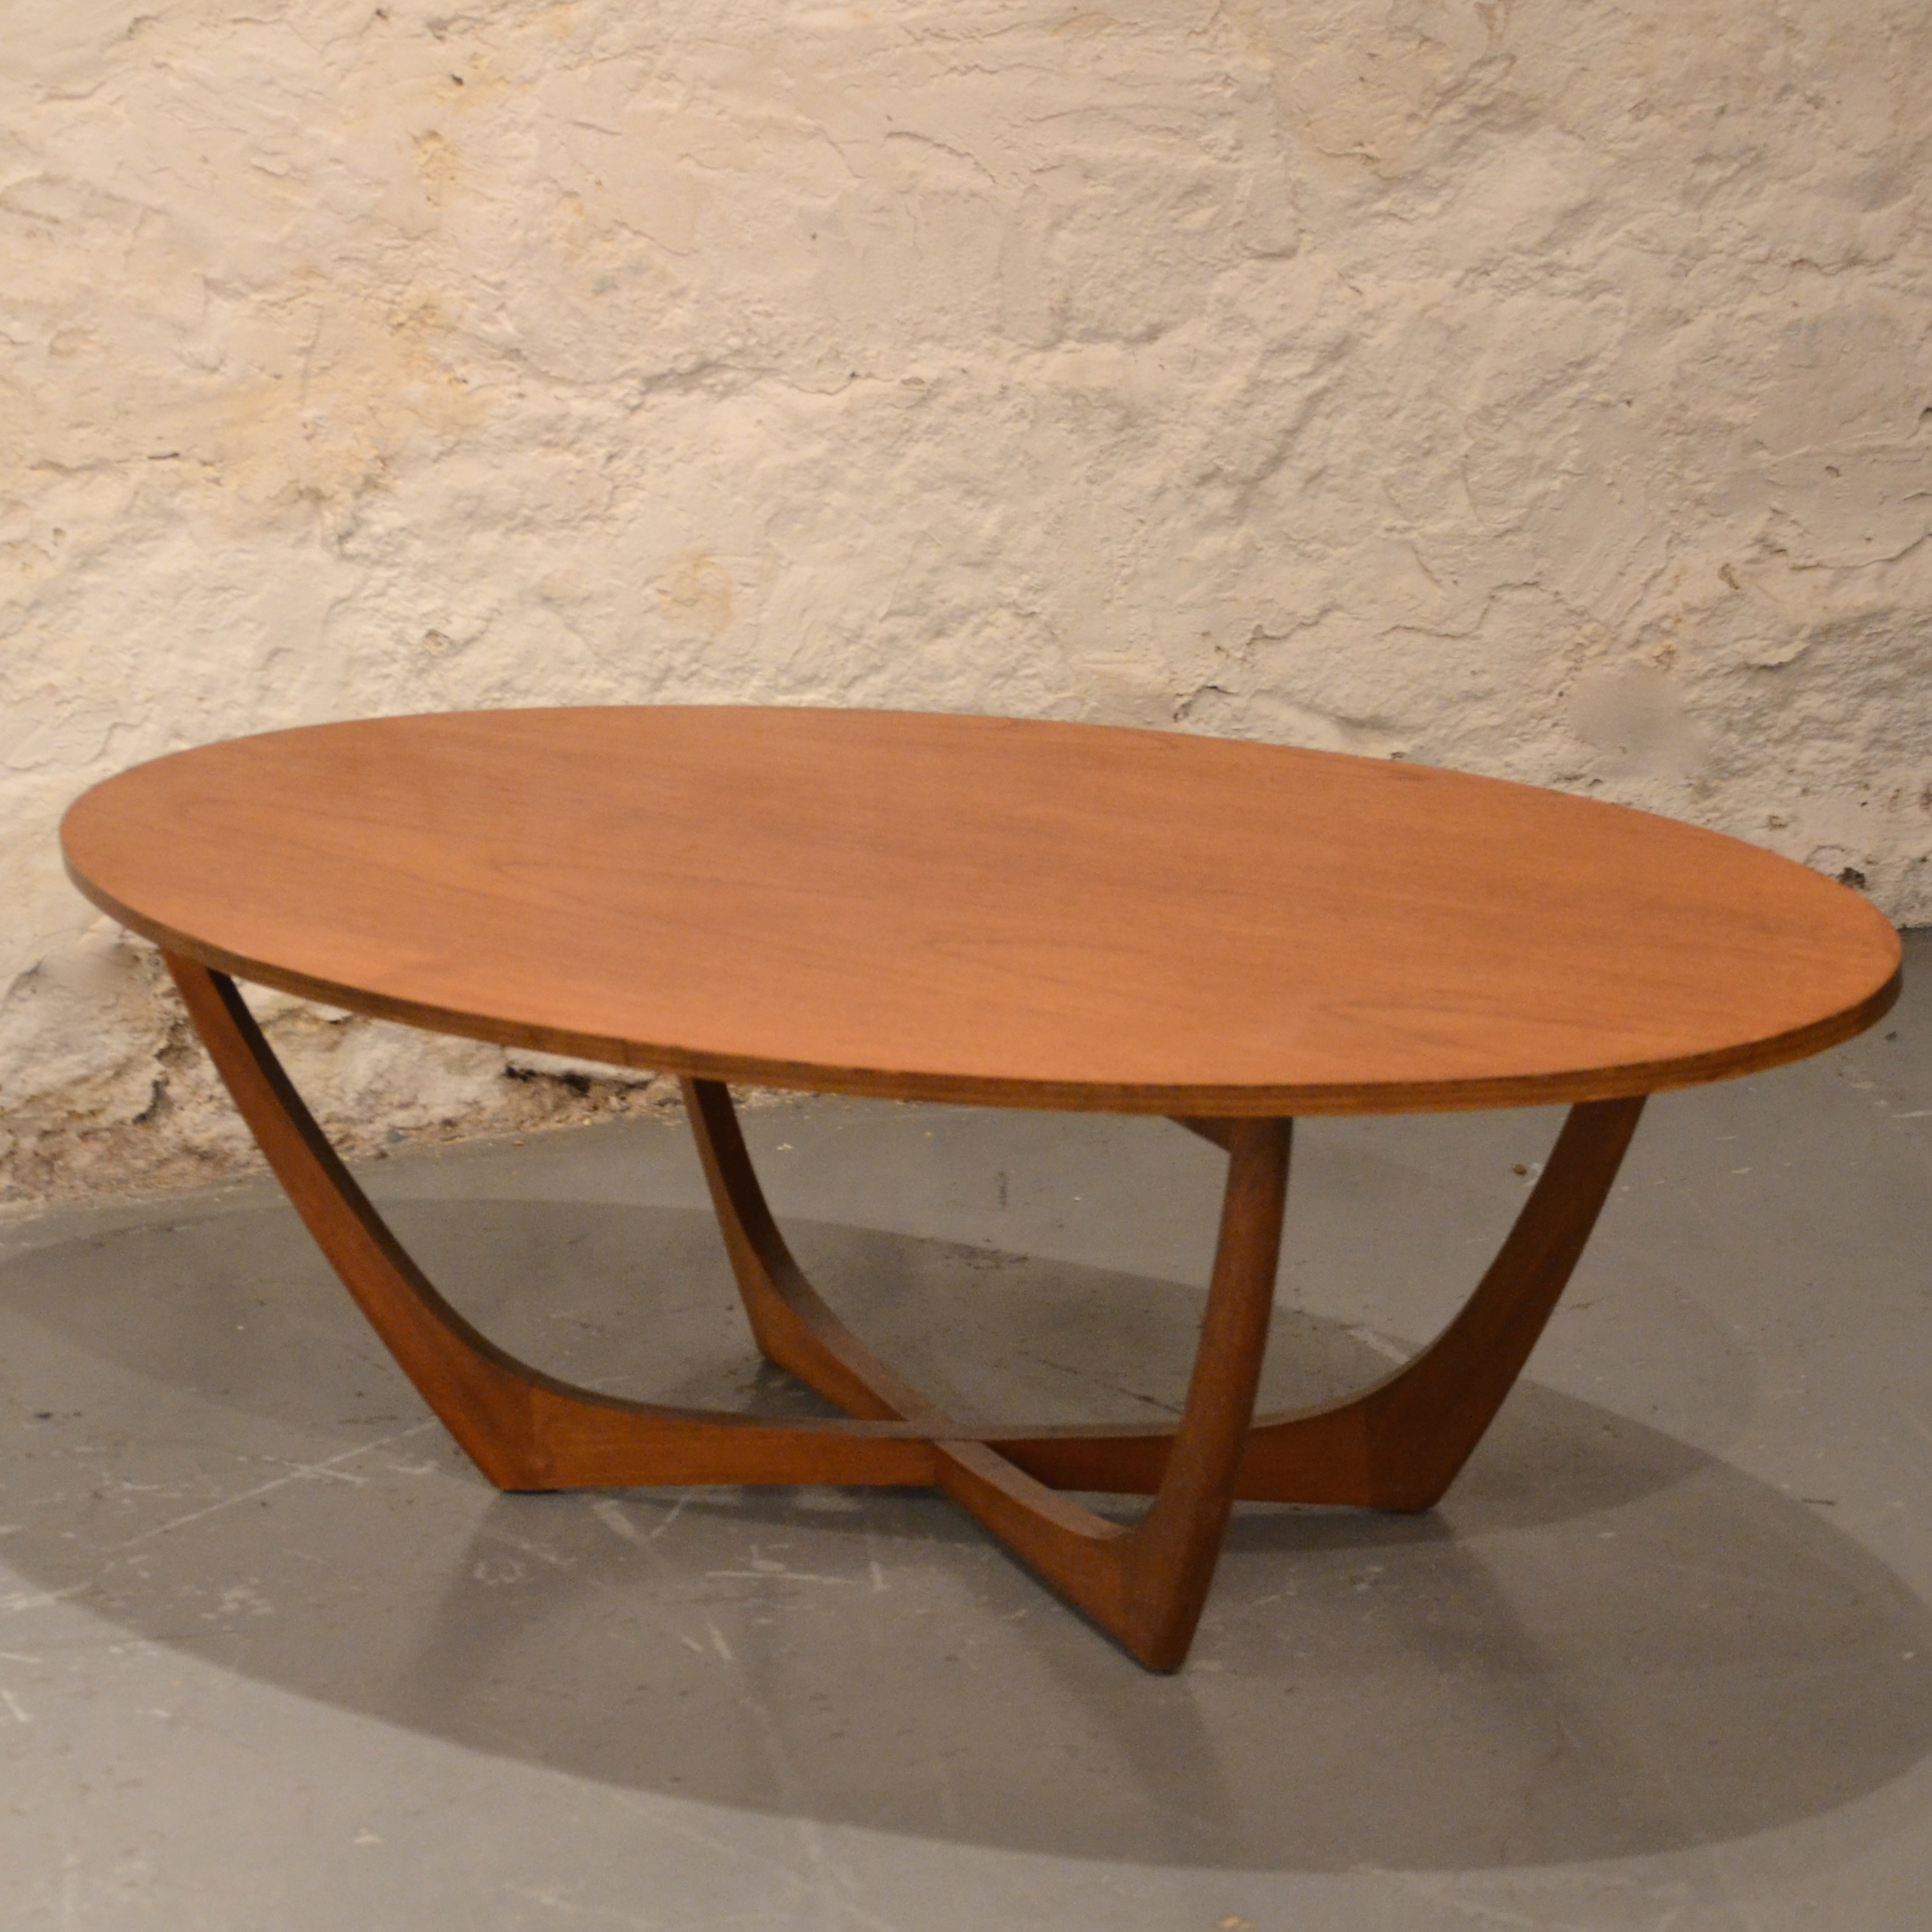 Table basse scandinave ovale bindiesbindies - Table basse ovale scandinave ...